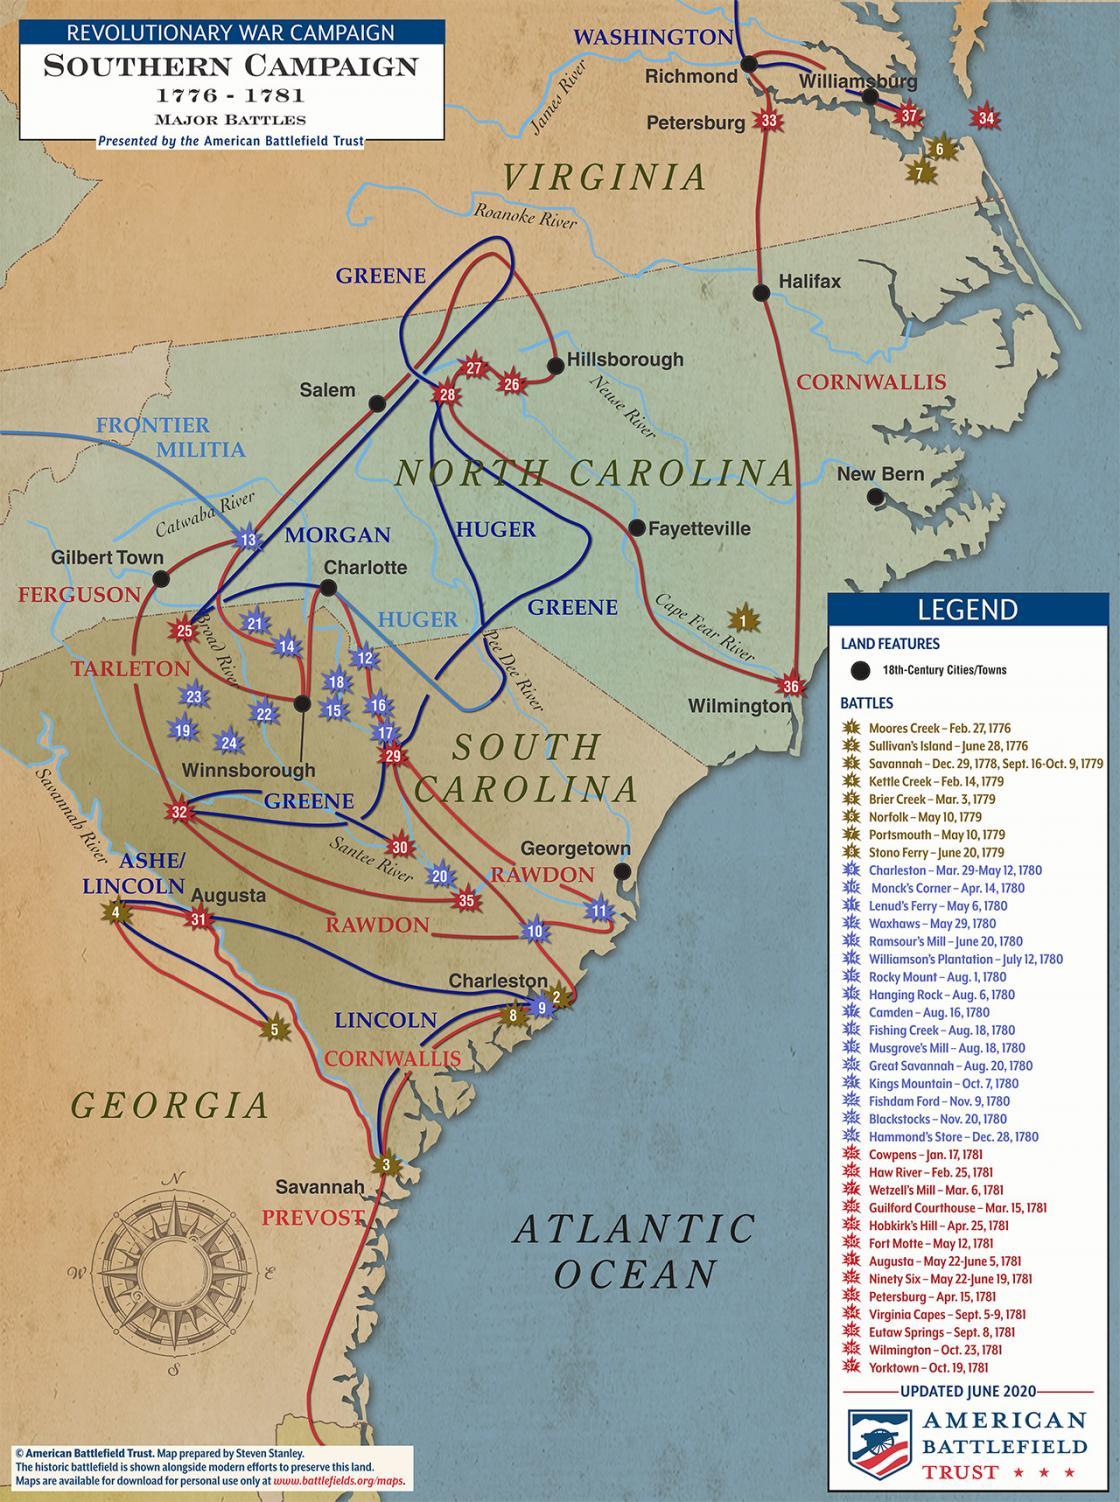 Major Battles of the Southern Campaign - 1776 to 1781 (June 2020)